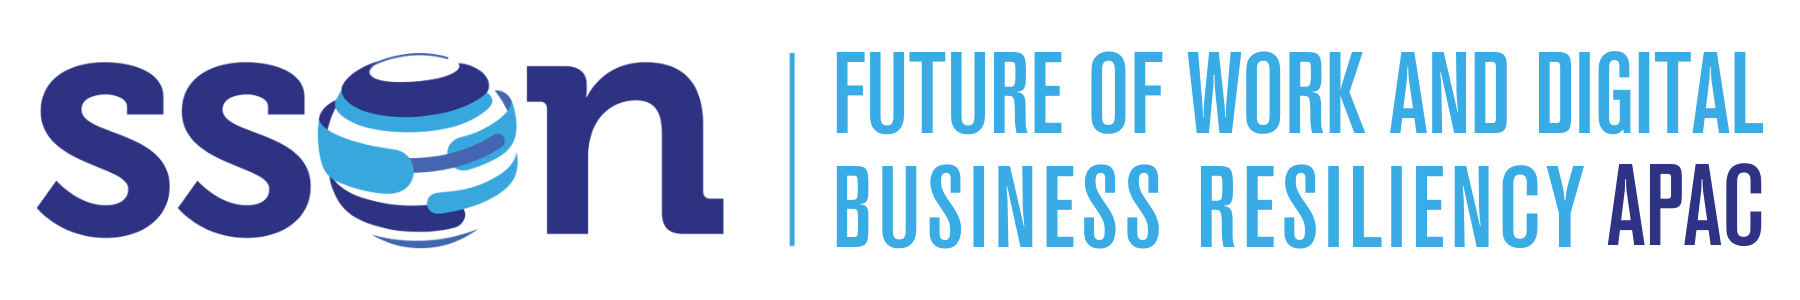 Future of Work and Digital Business Resiliency APAC Summit